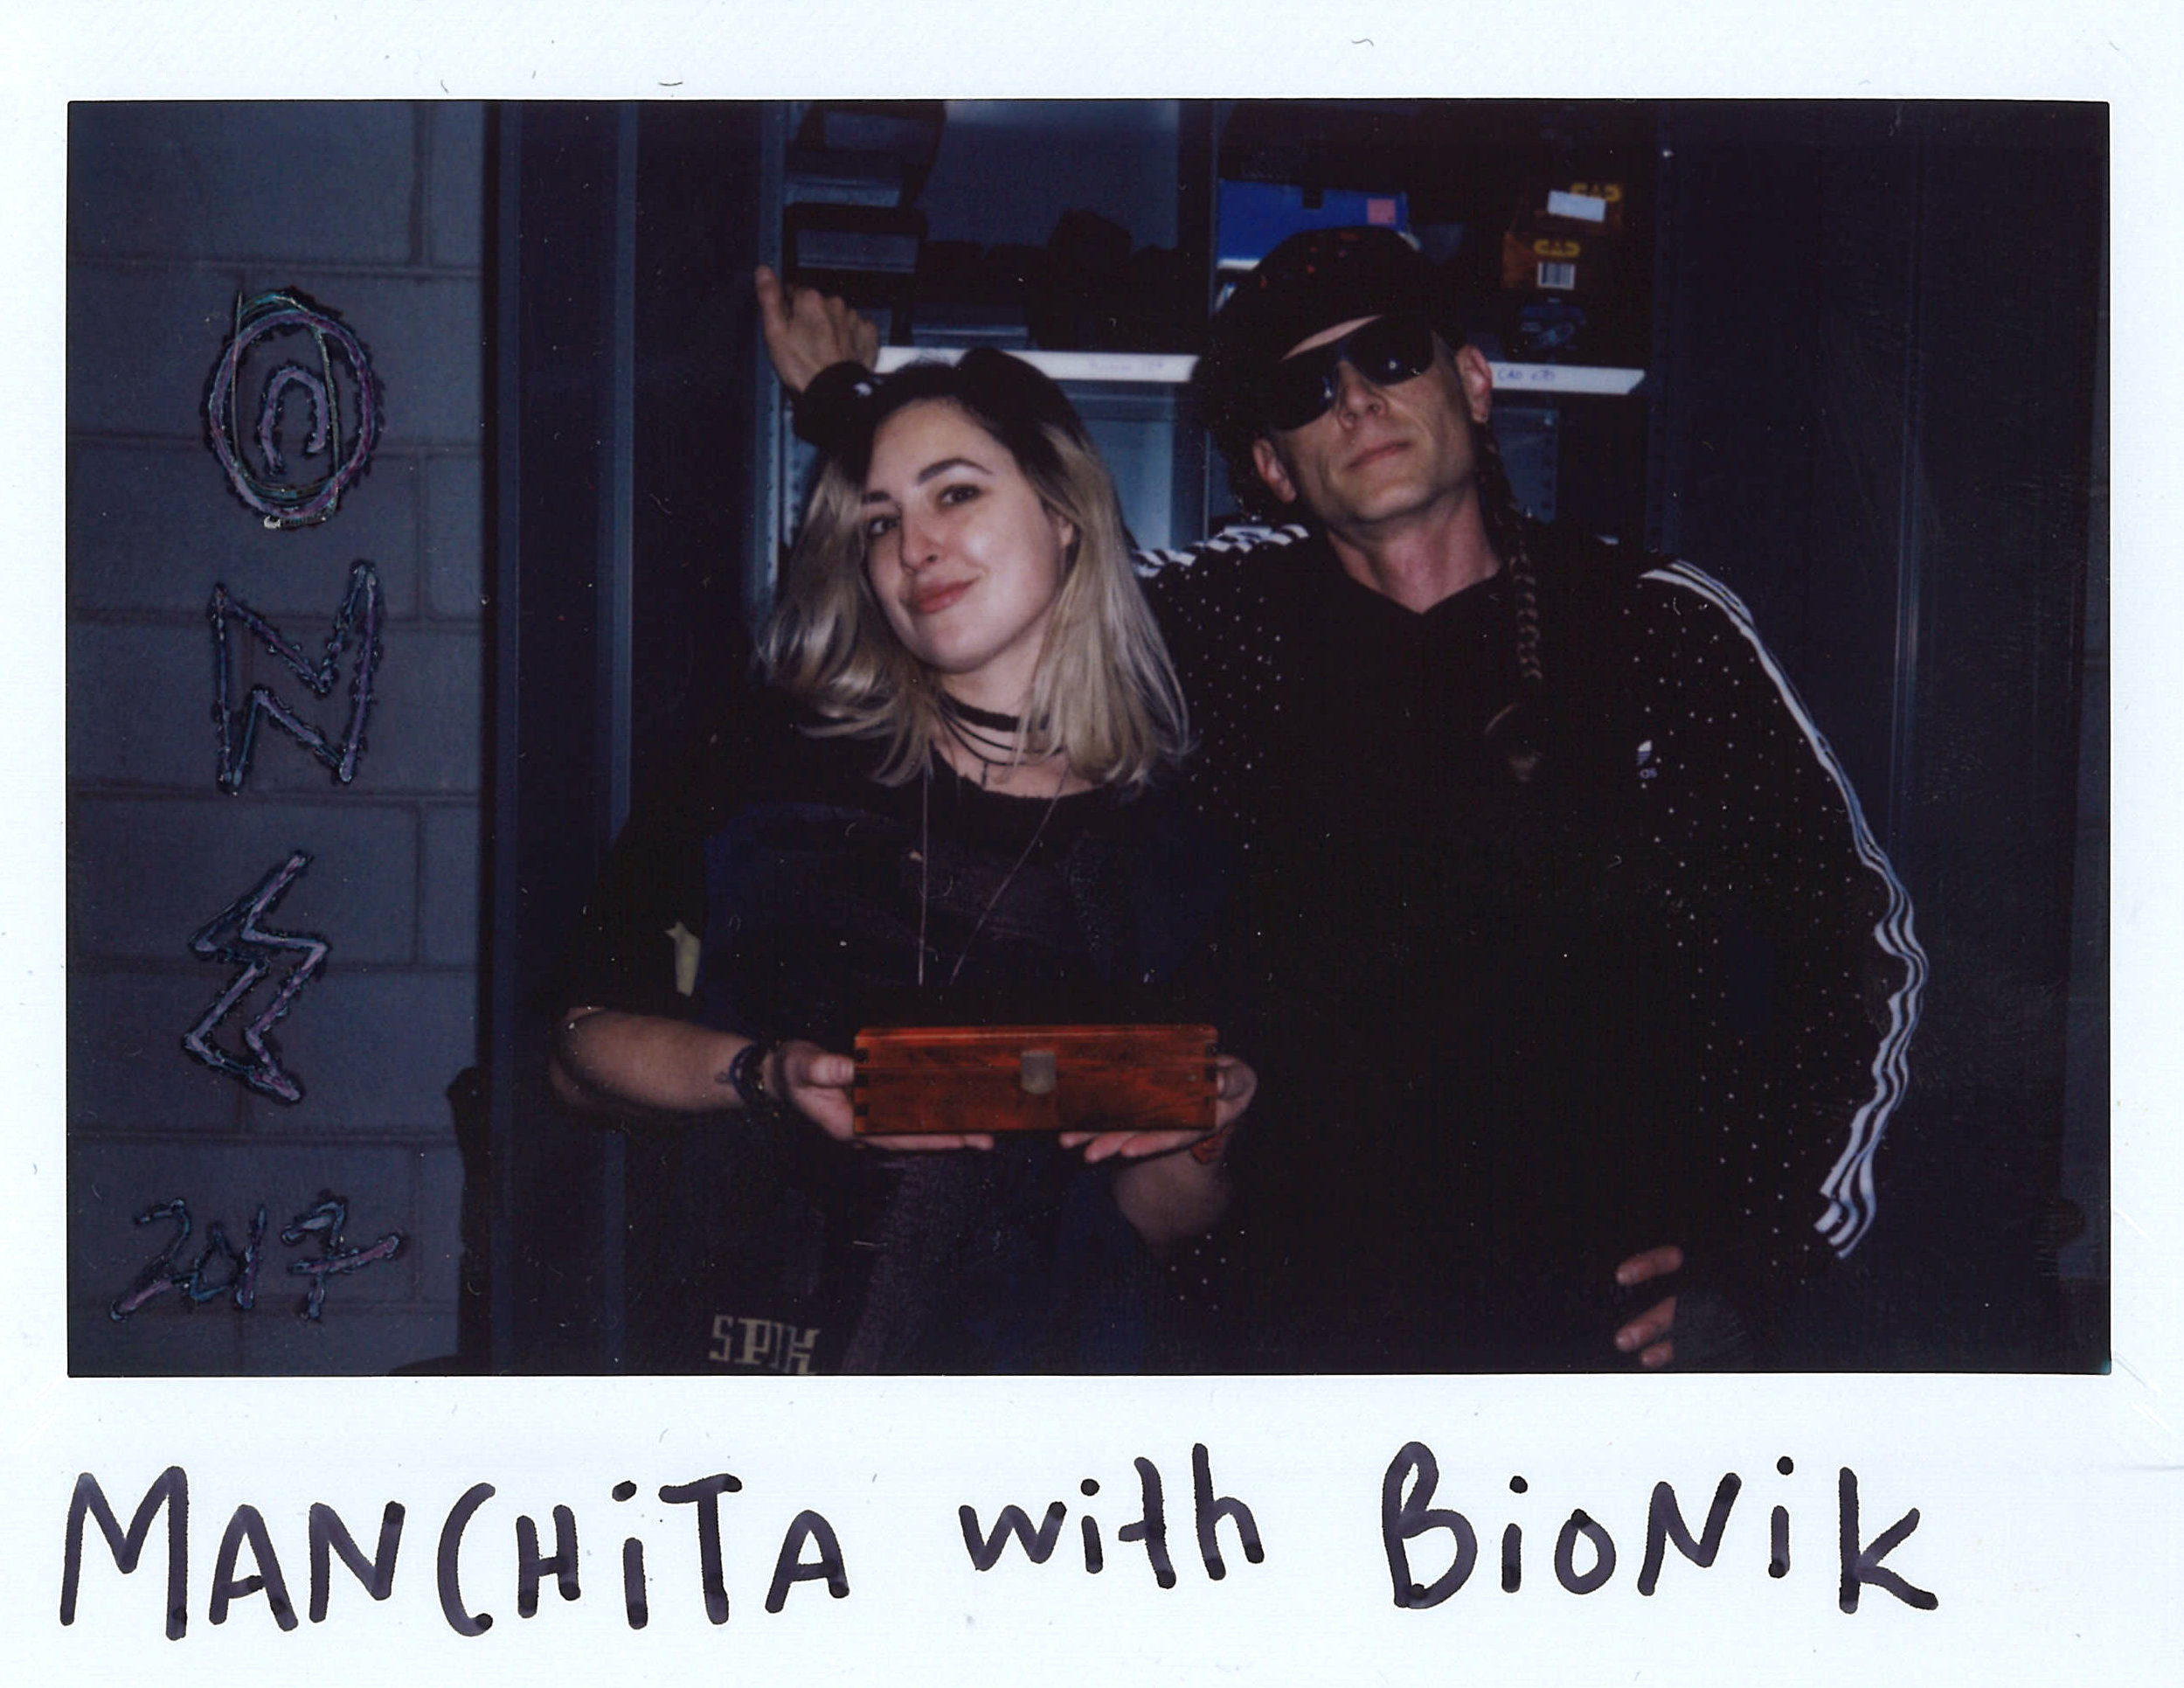 Manchita with Bionik